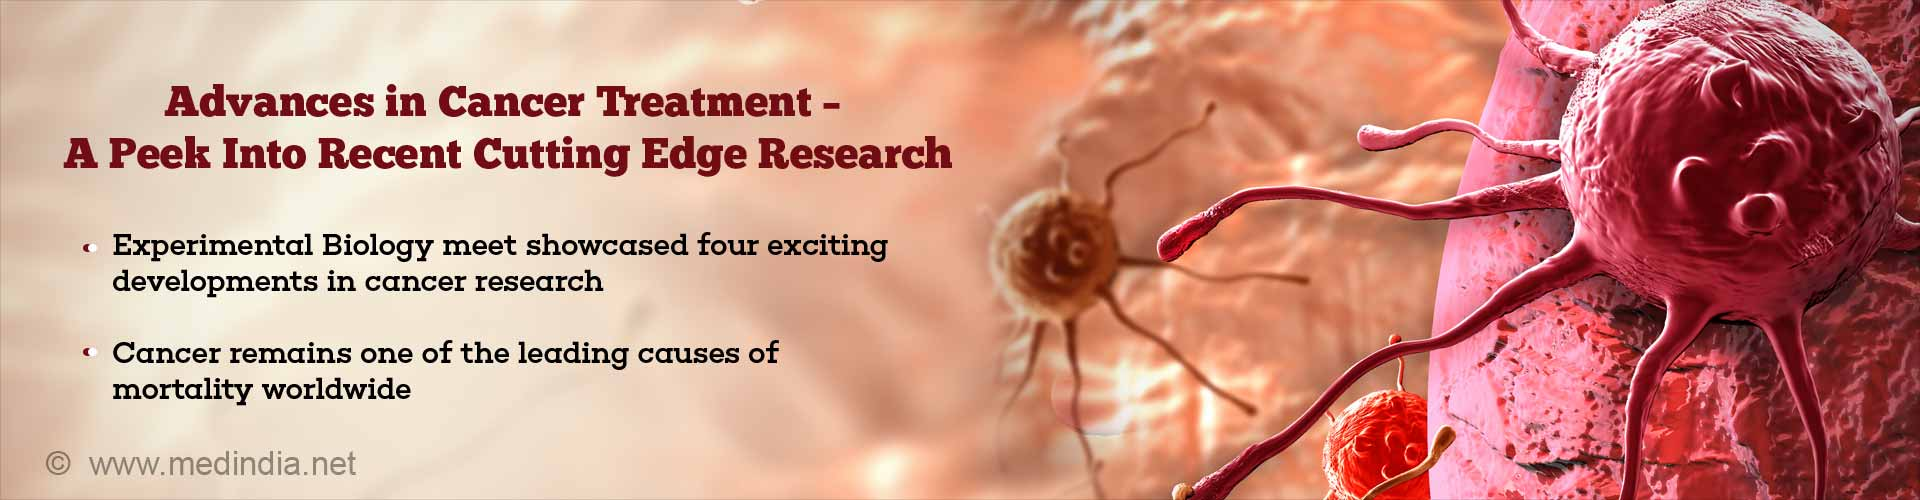 advances in cancer treatment - a peek into recent cutting edge research - experimental biology meet showcased four exciting developments in cancer research - cancer remains one of the leading causes of mortality worldwide